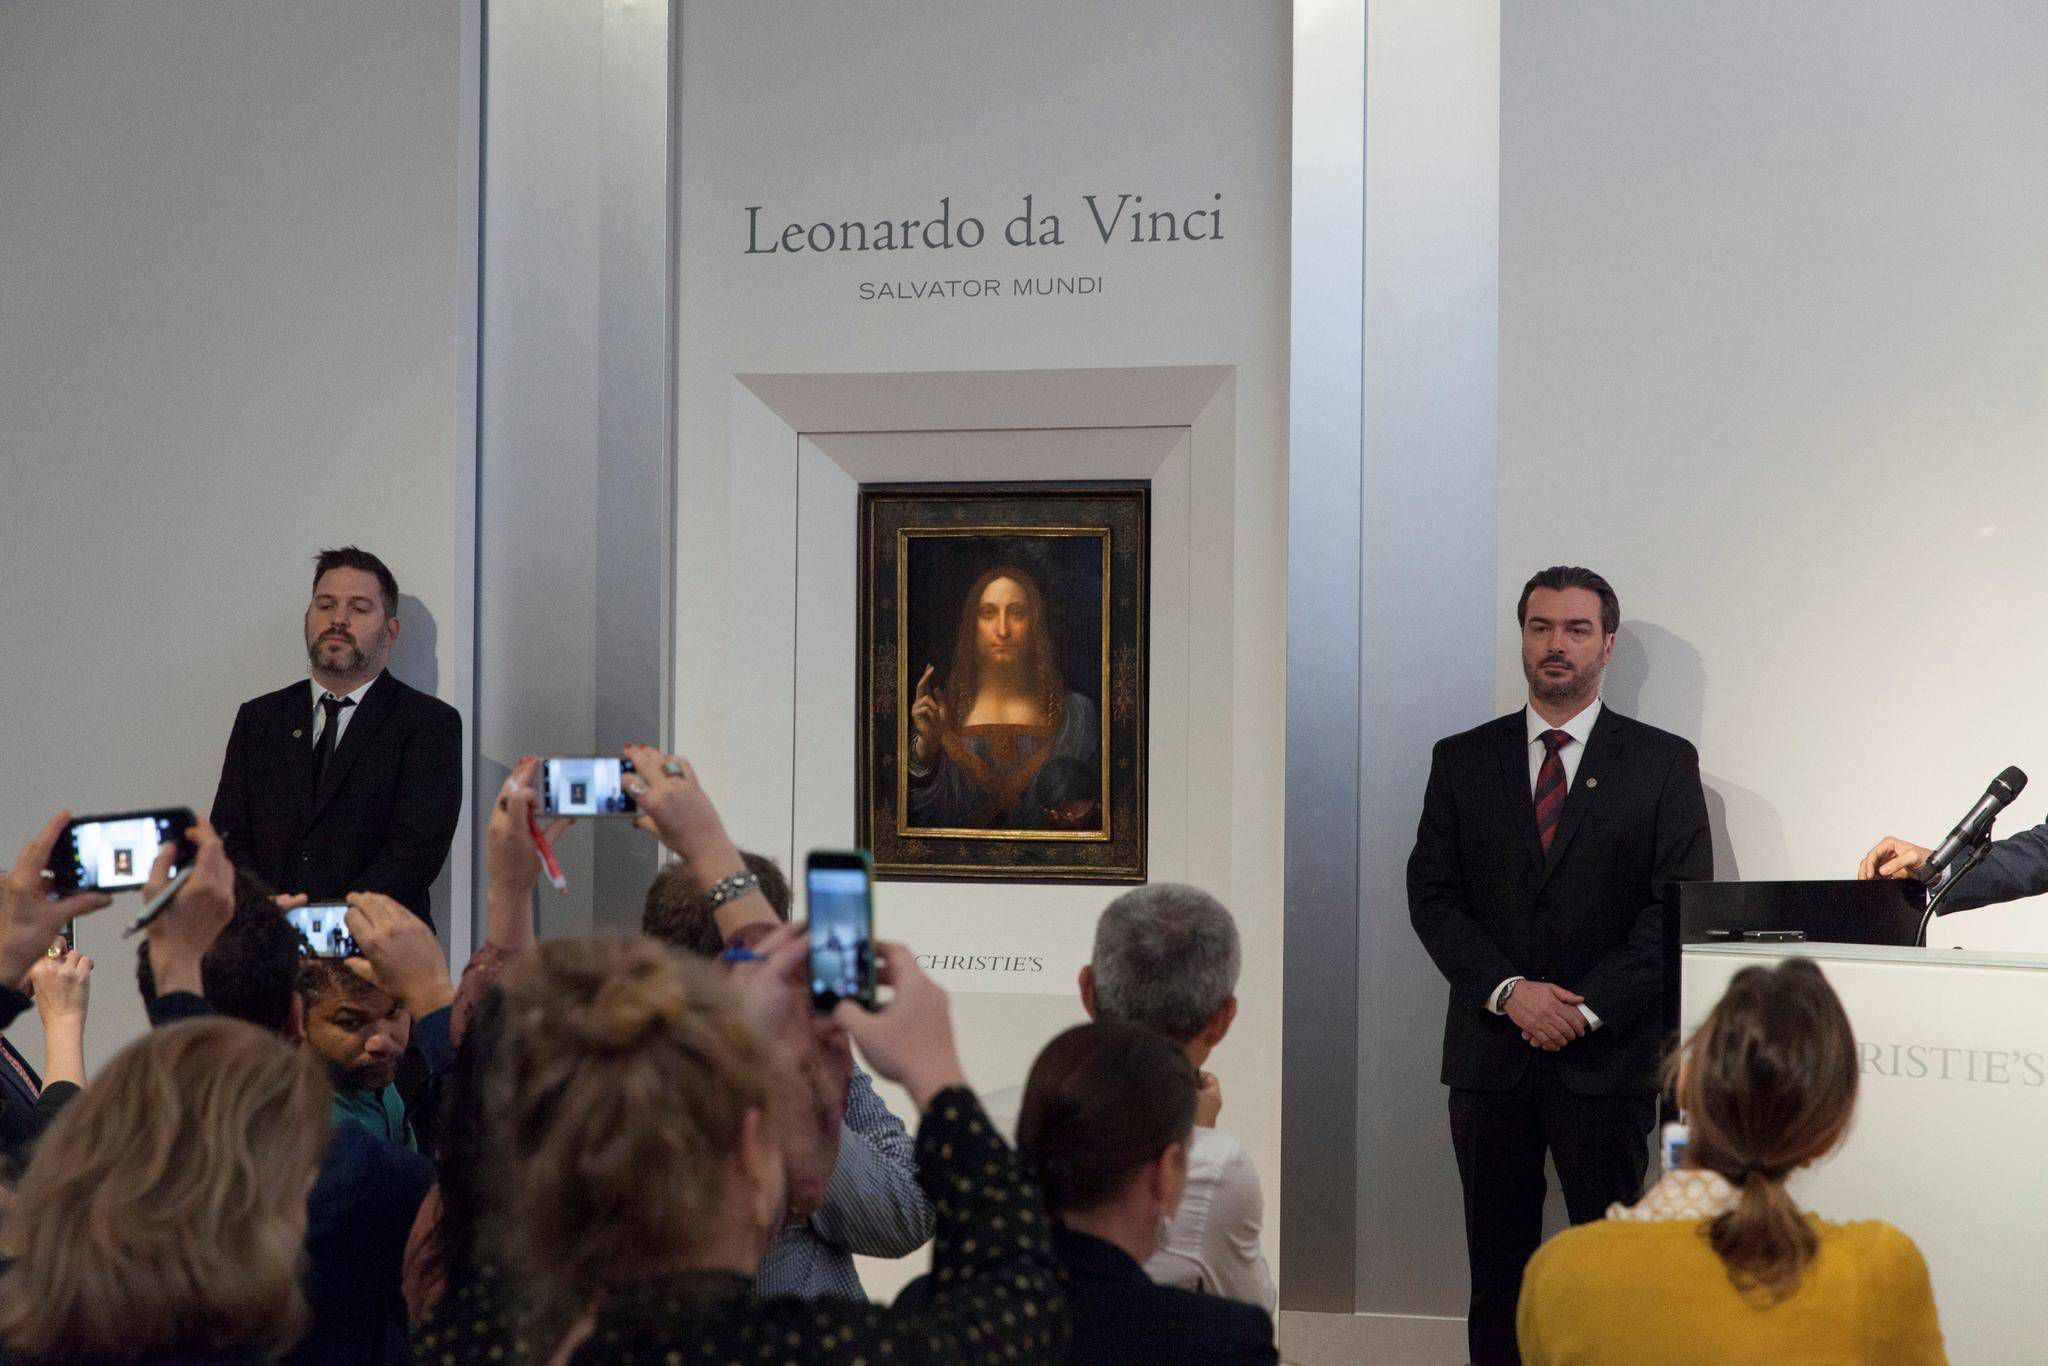 Christies, Salvator Mundi